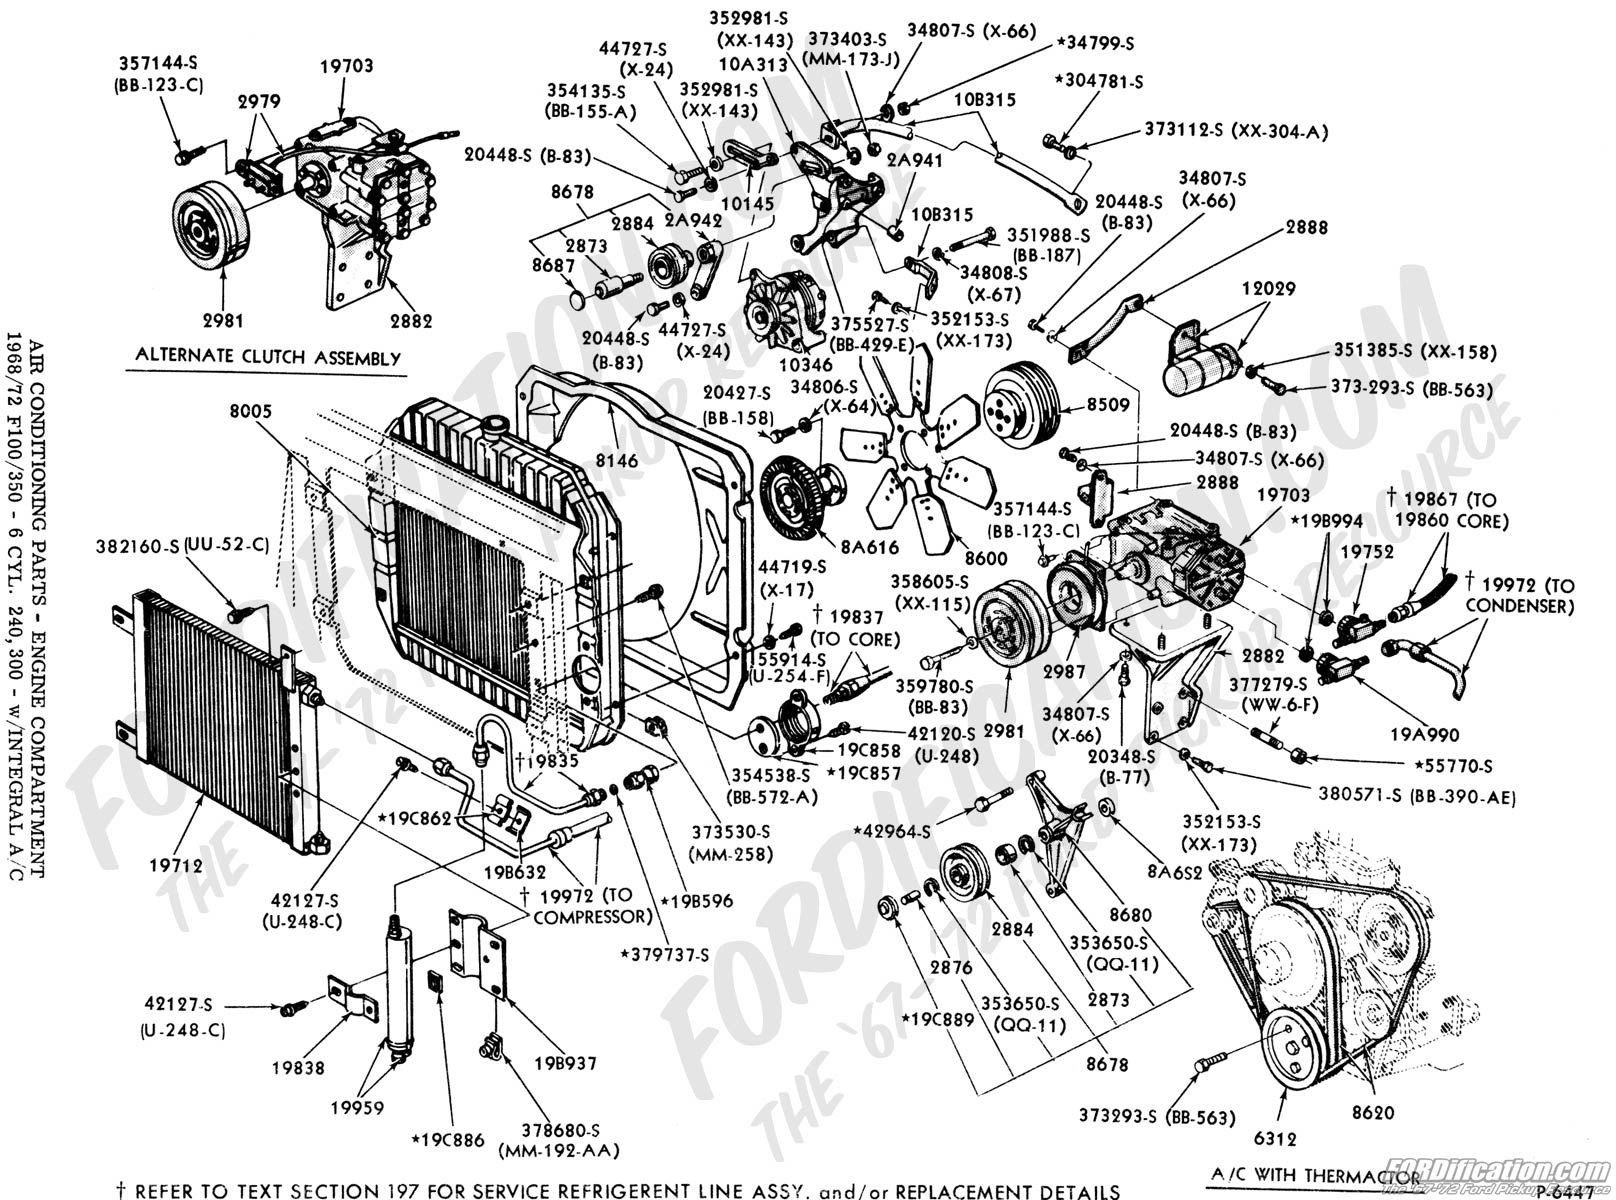 Hemi Engine Firing Order Diagram